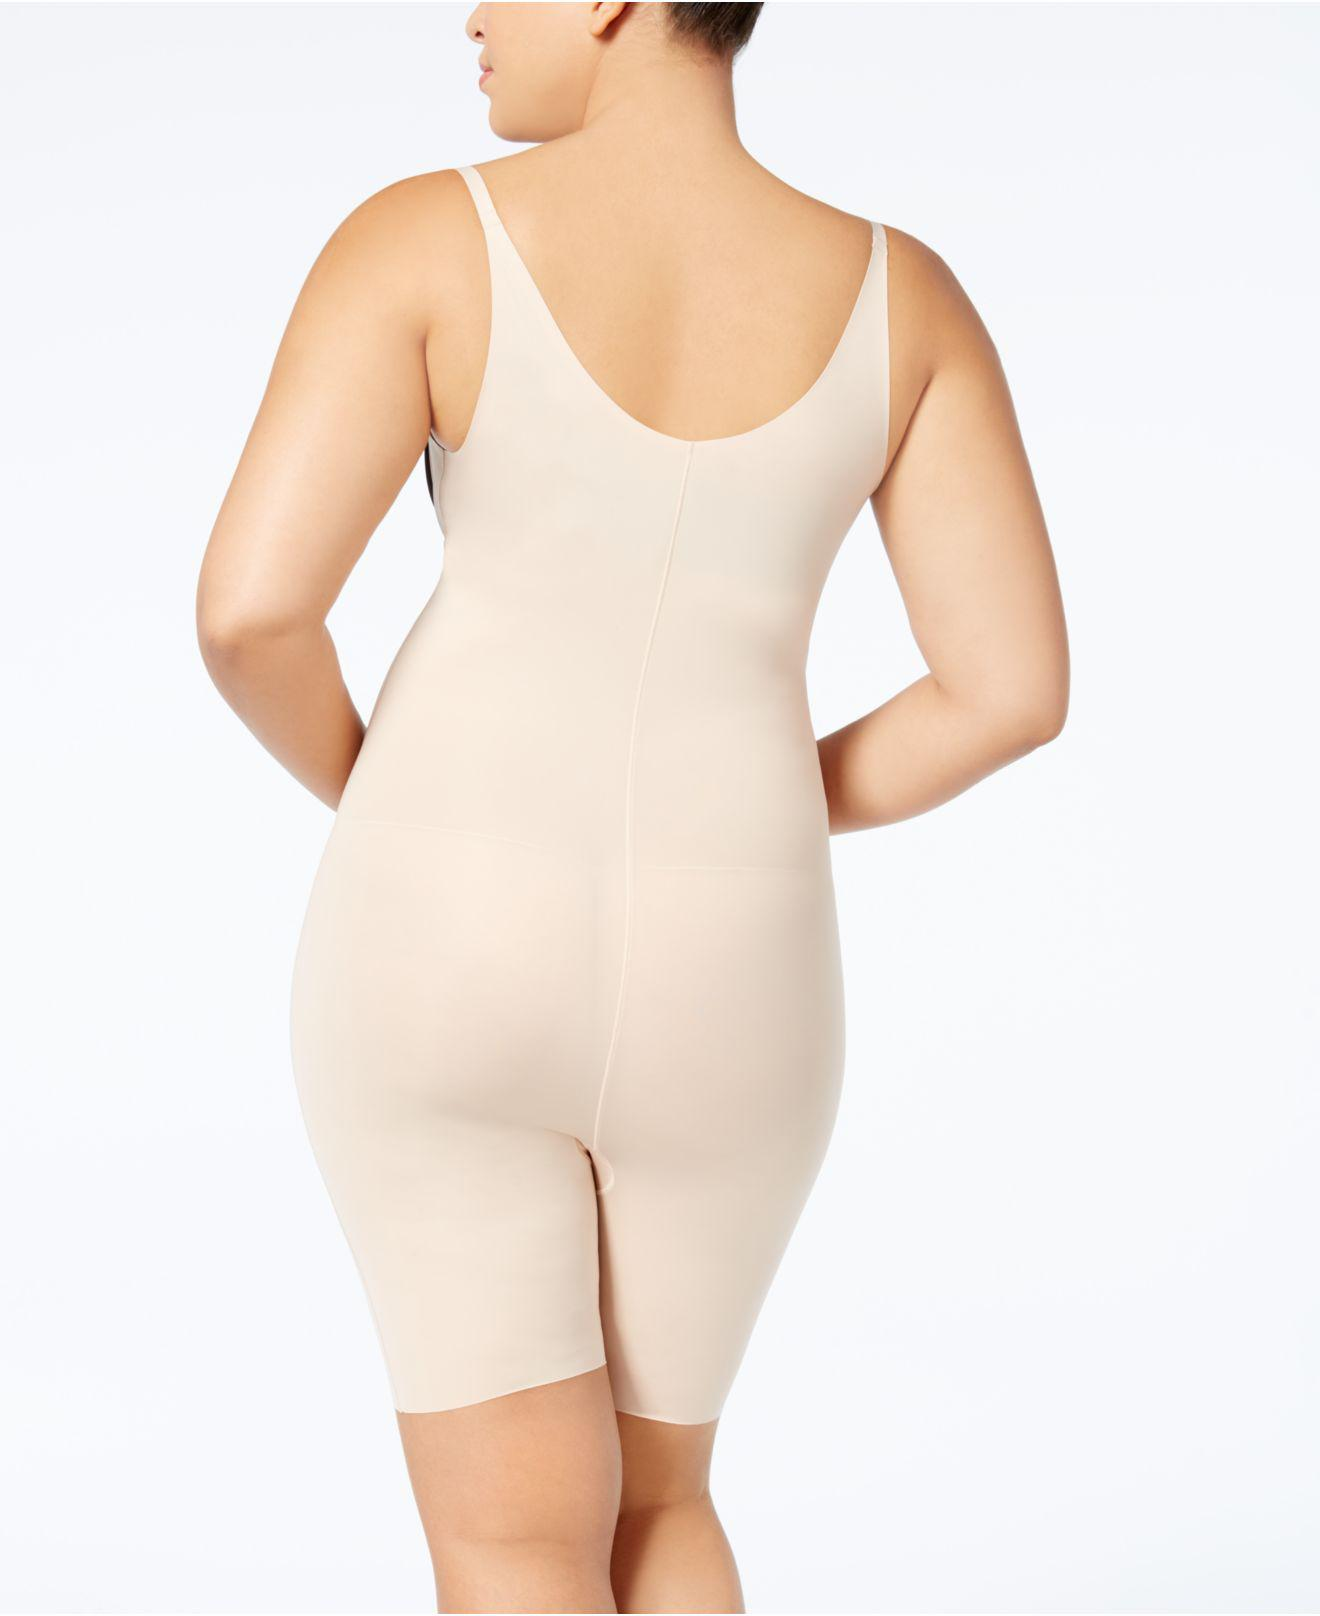 5817edfea Lyst - Spanx Firm-control Plus Size Open-bust Mid-thigh Bodysuit 10021p in  Natural